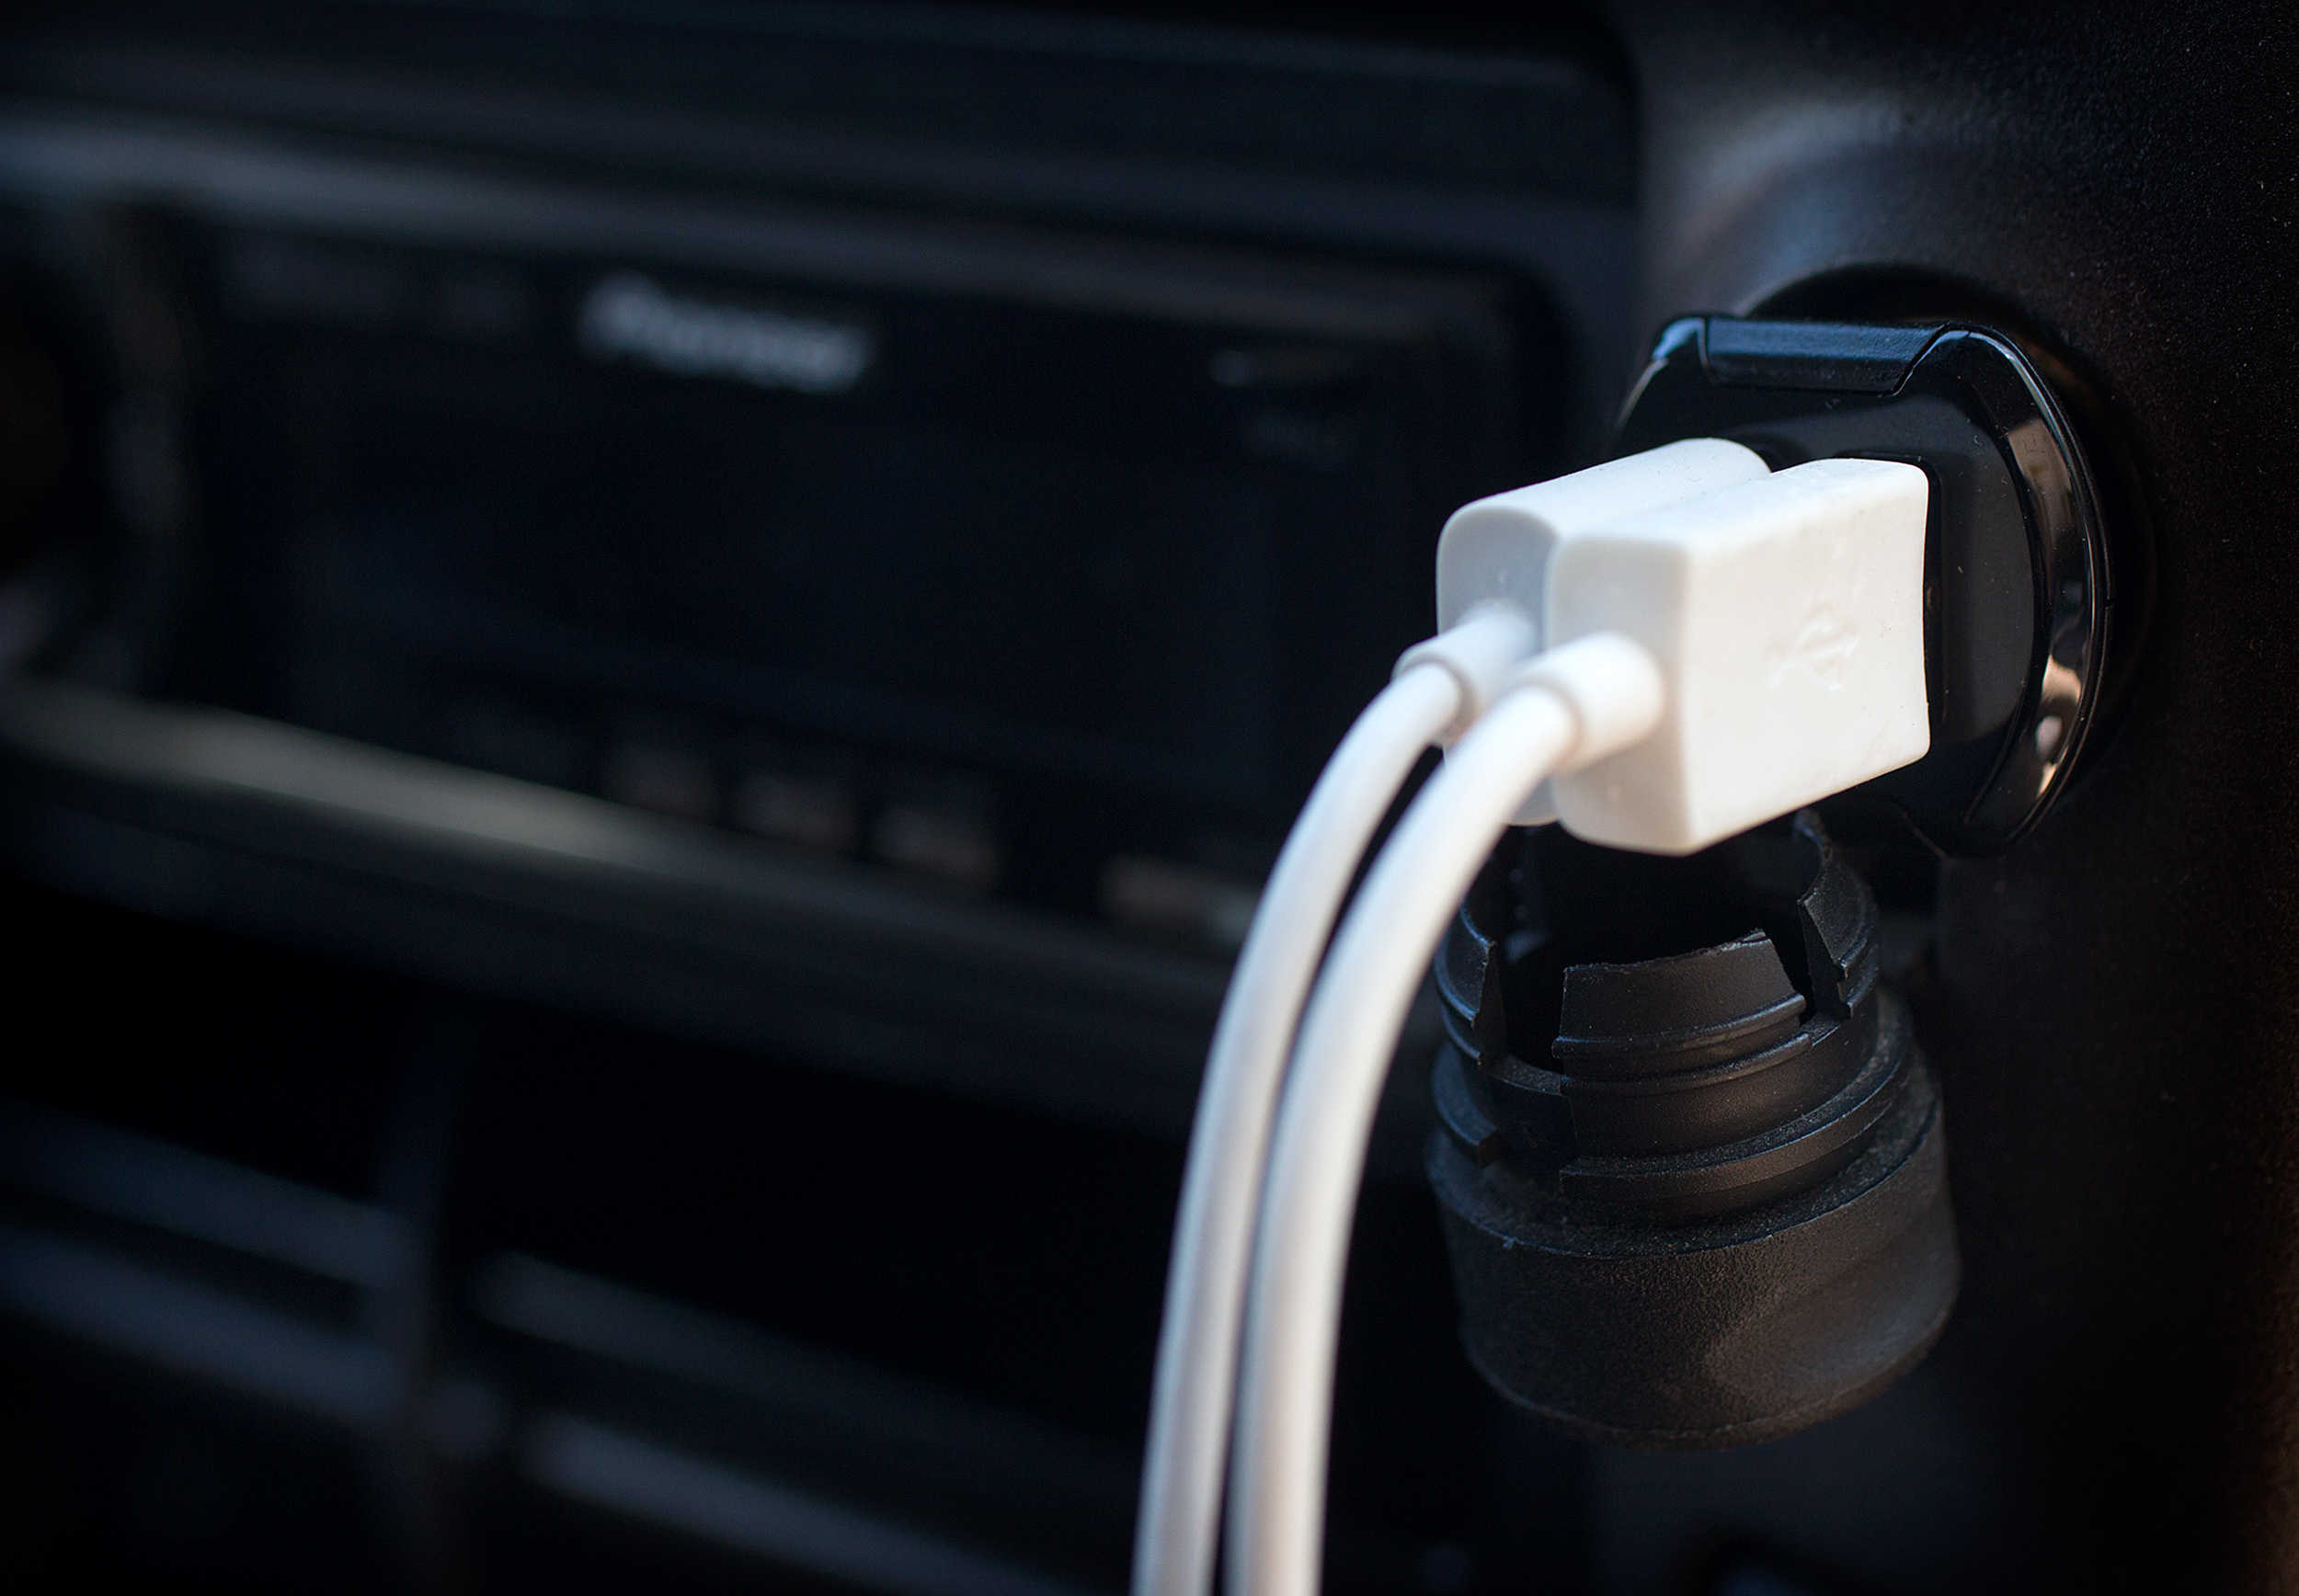 The flush-mount reVOLT car charger tidies up any dashboard.